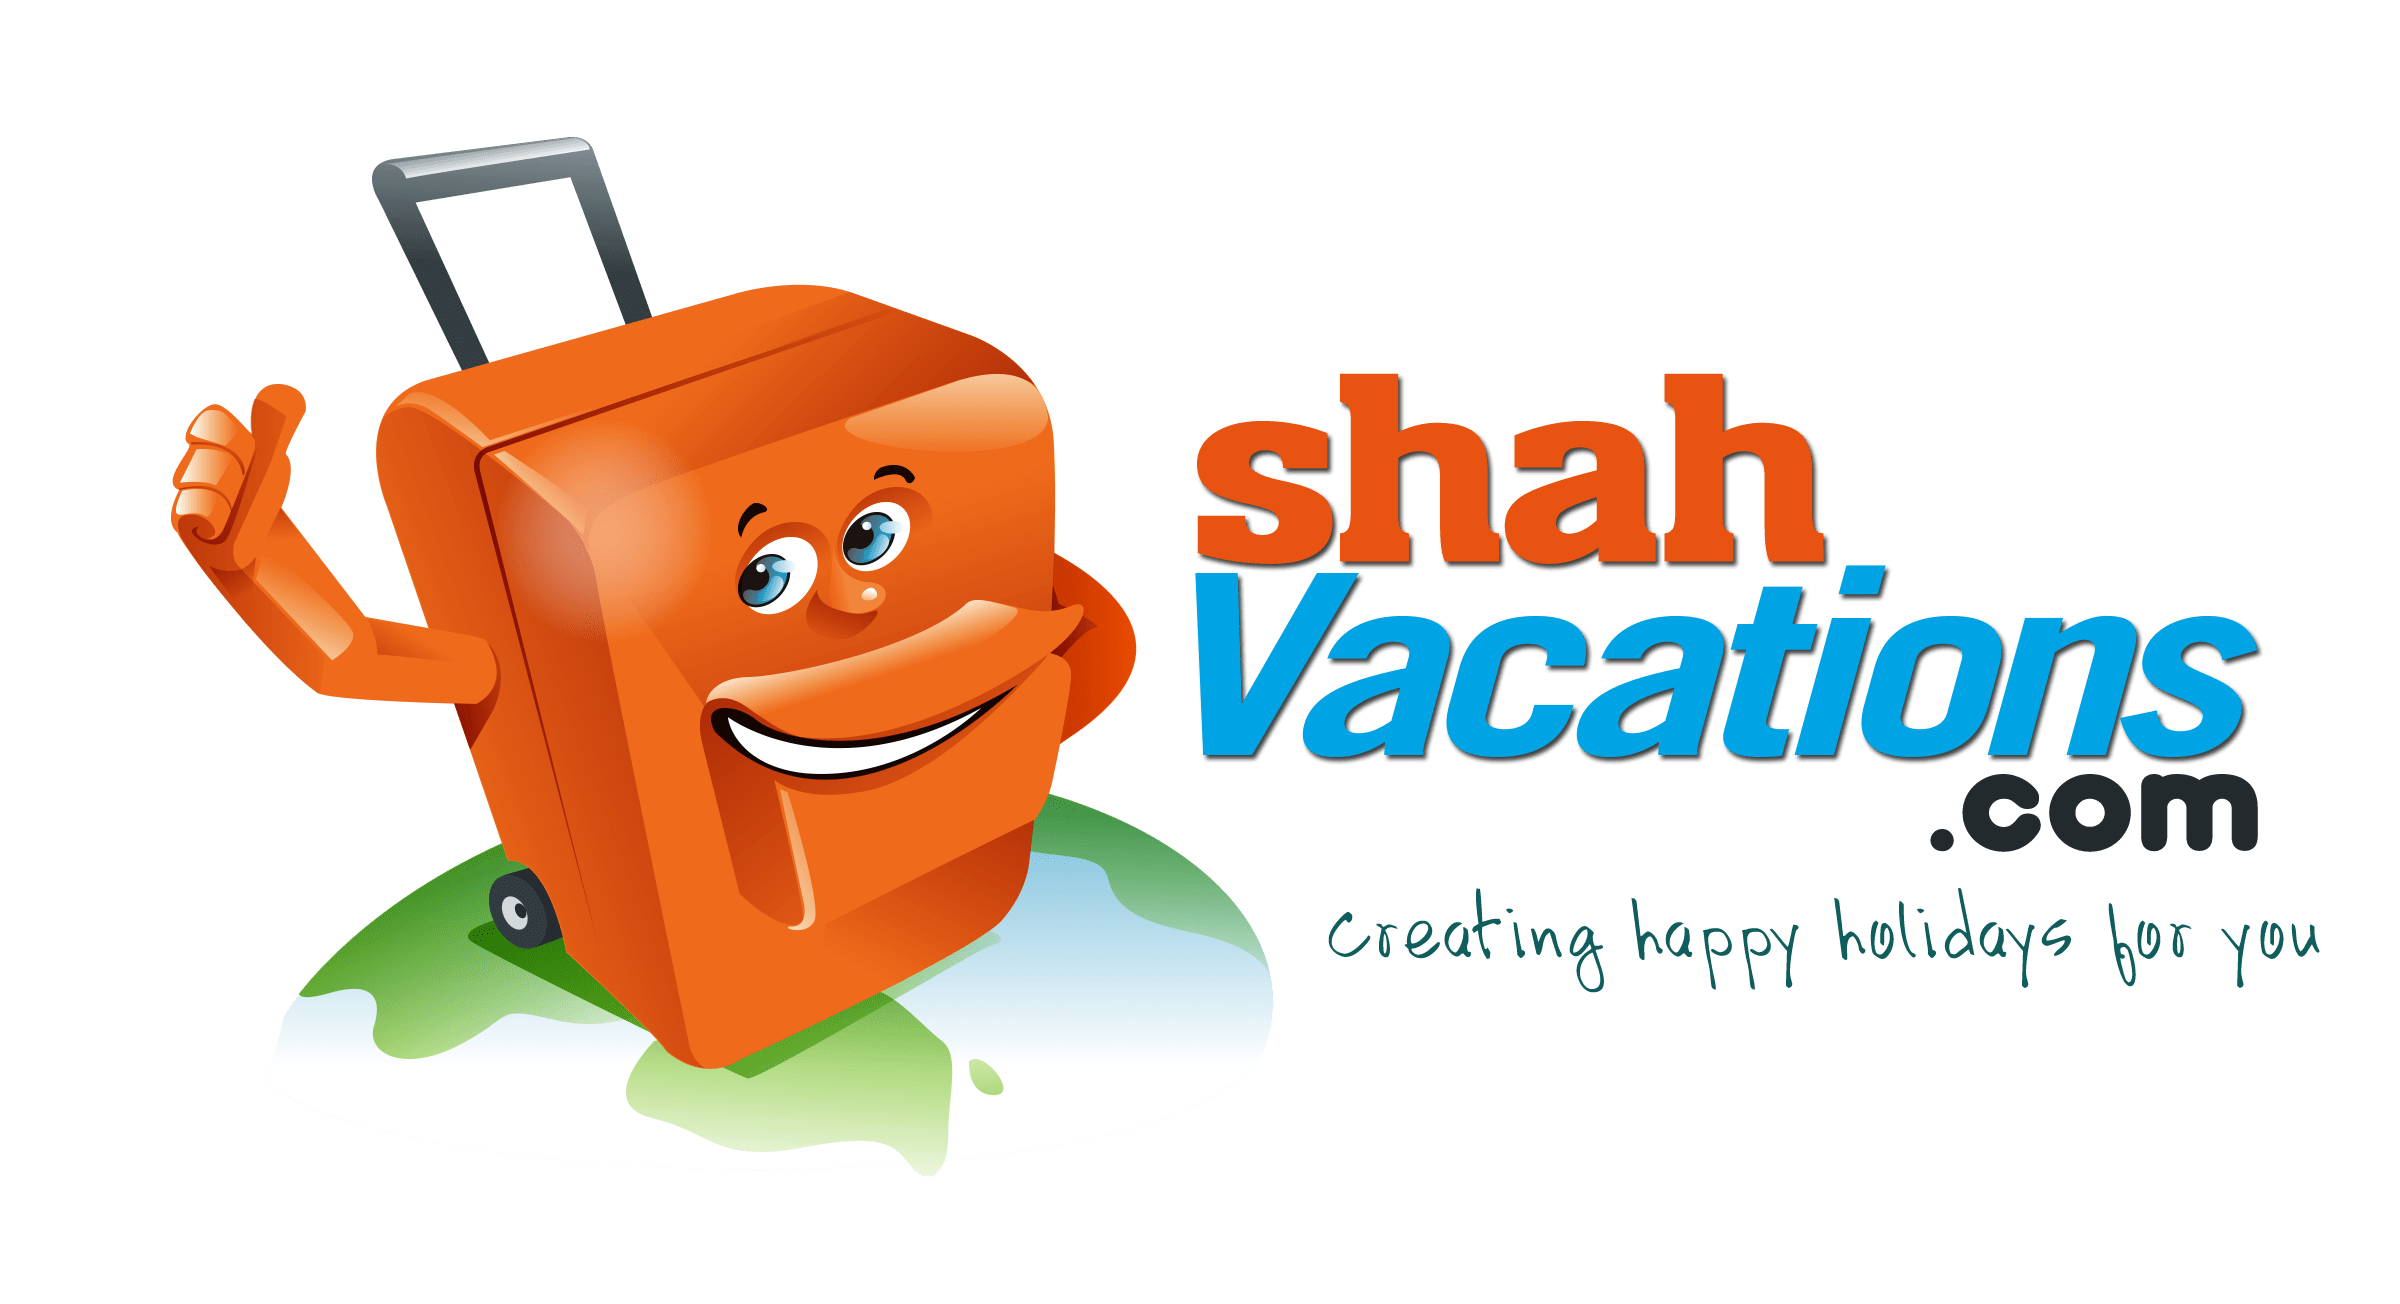 Shah Vacations